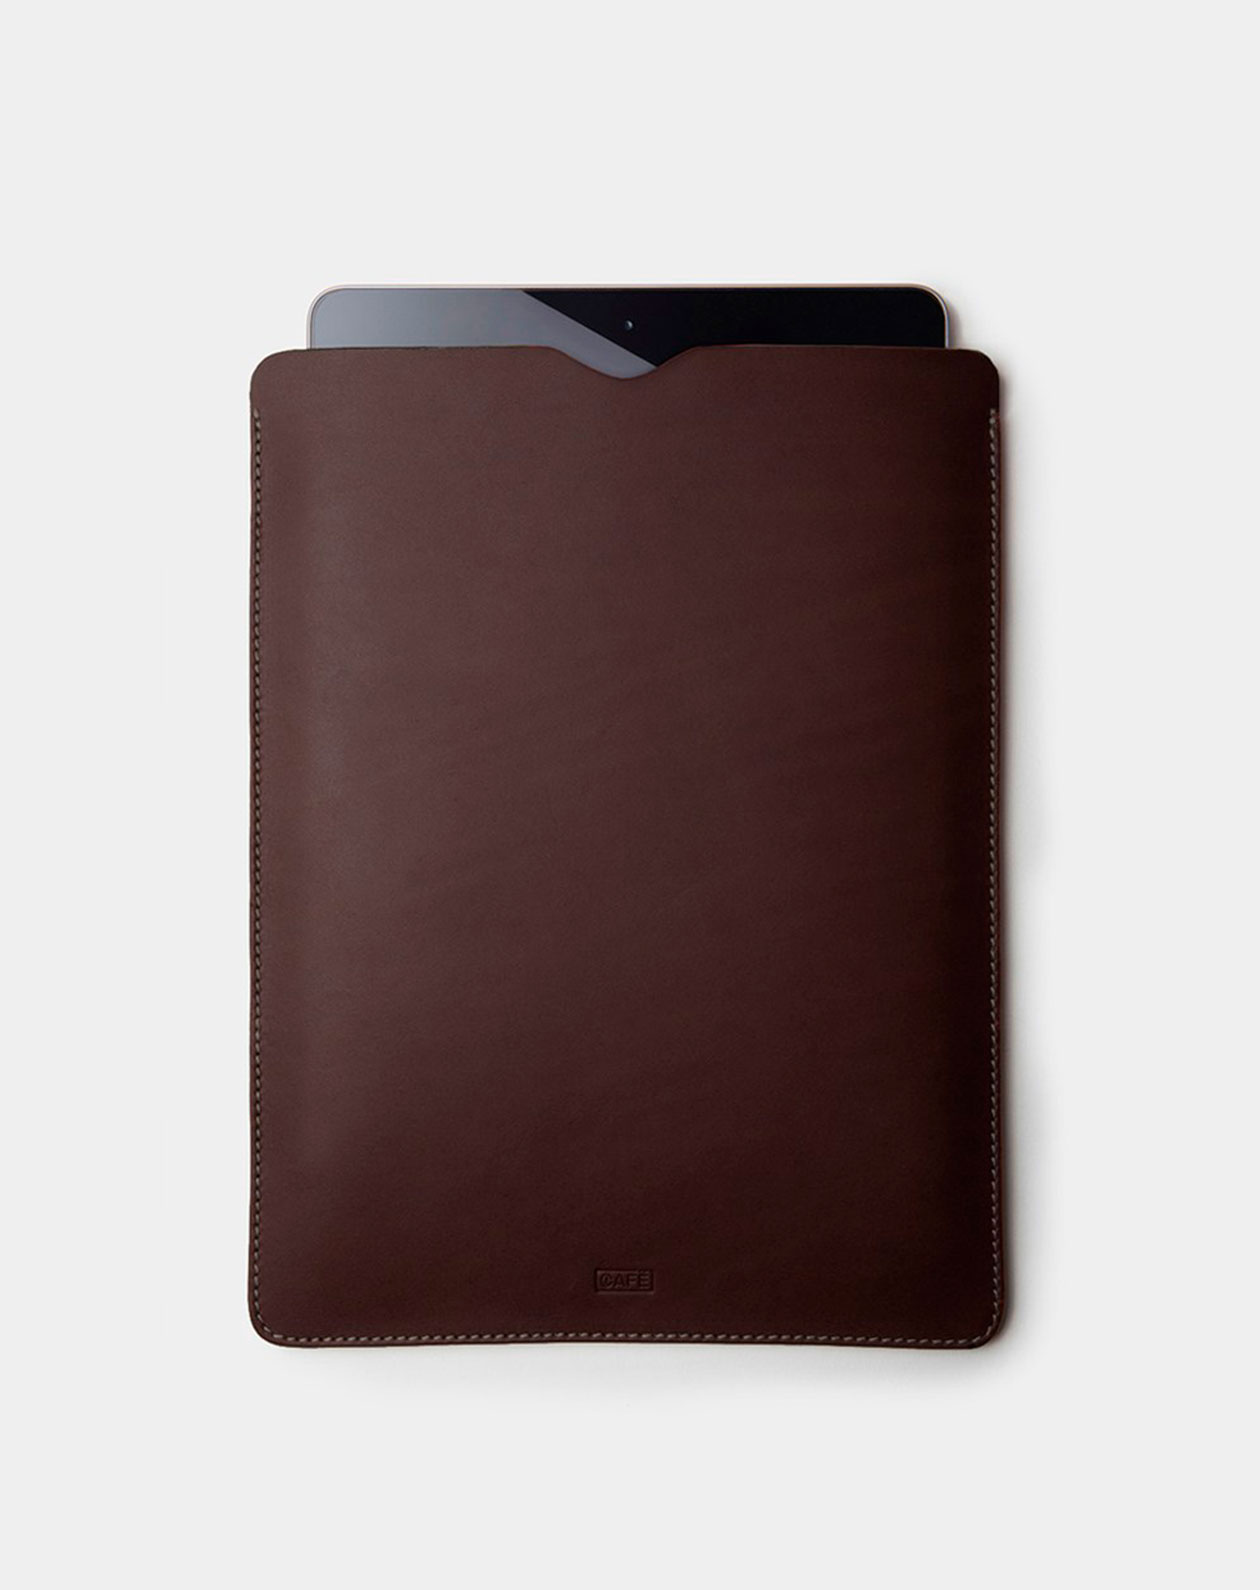 ipad leather case dark brown